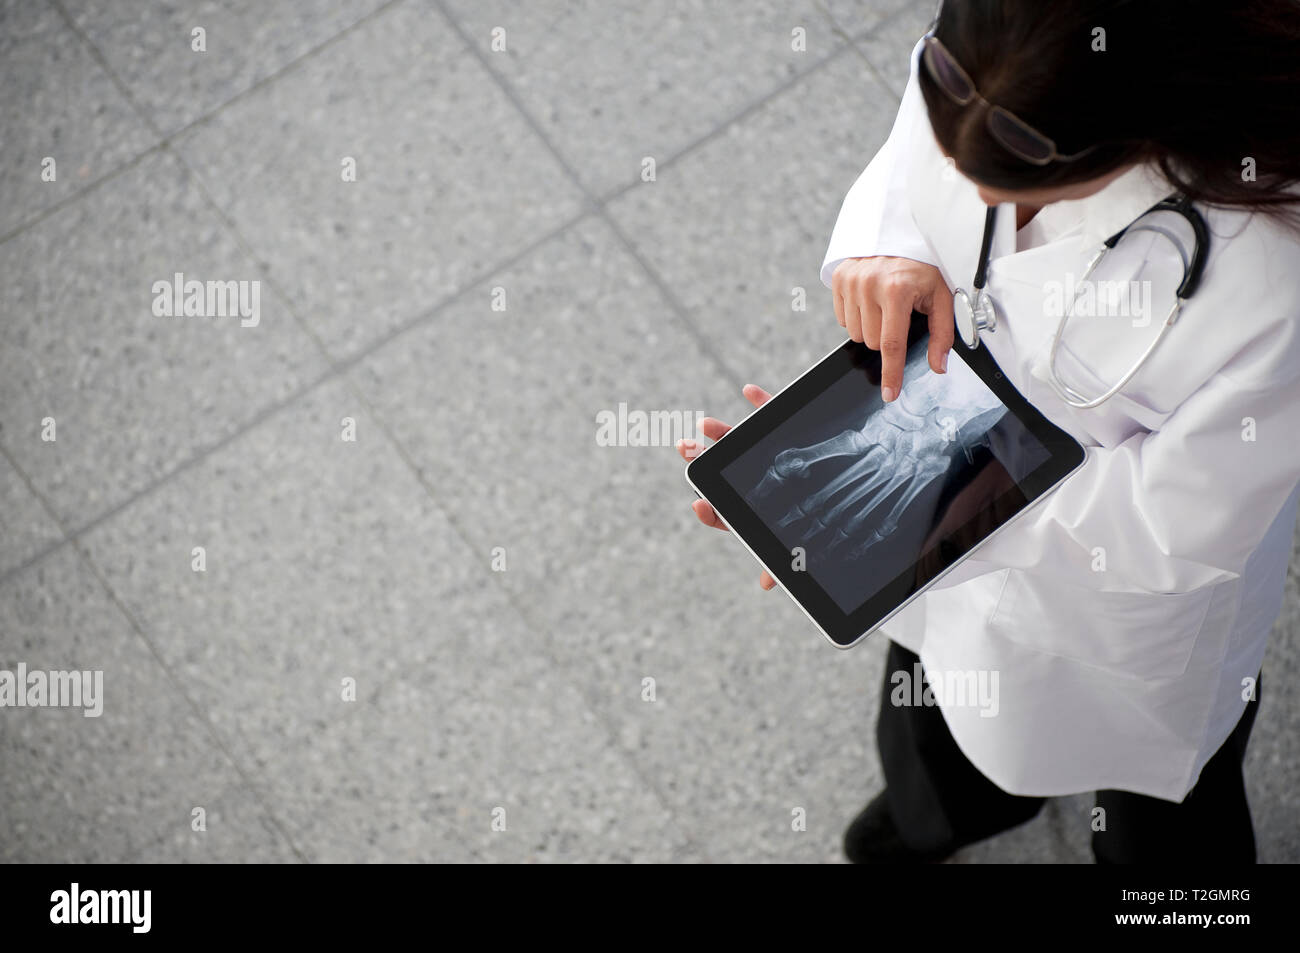 female doctor looking at x-ray on ipad tablet handheld computer - Stock Image